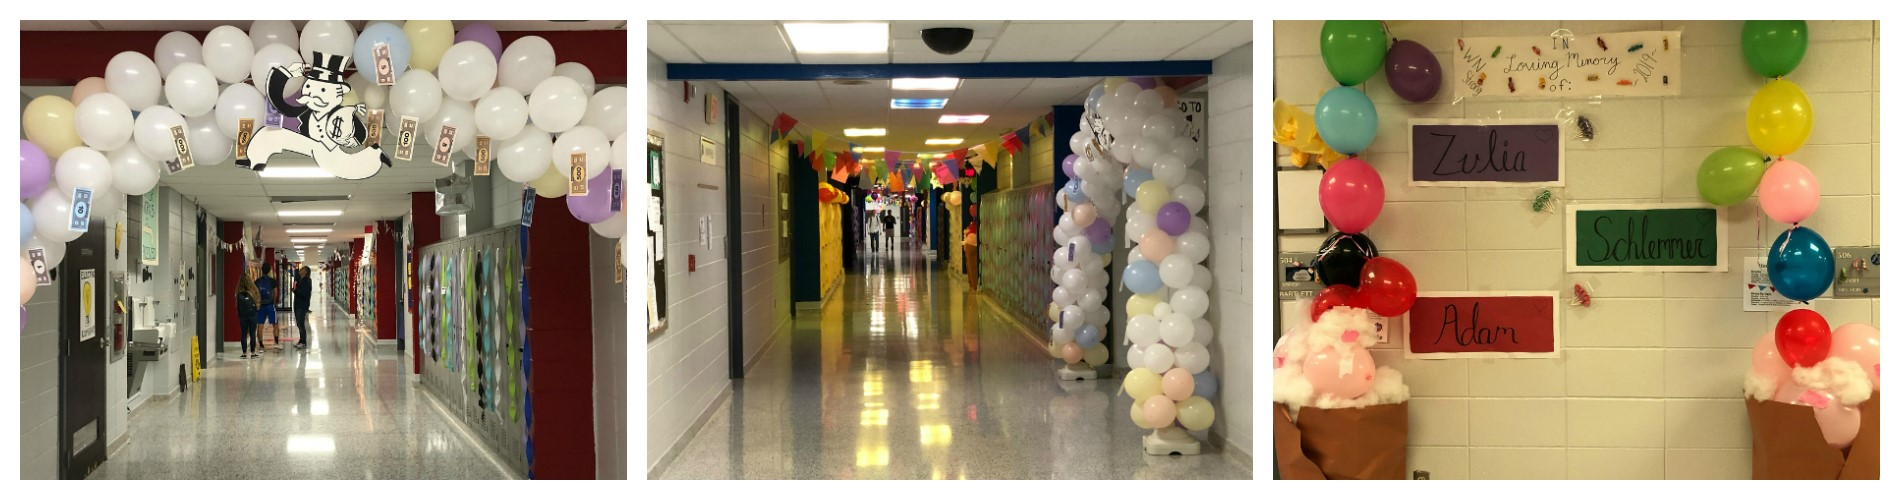 Homecoming hall decorating.